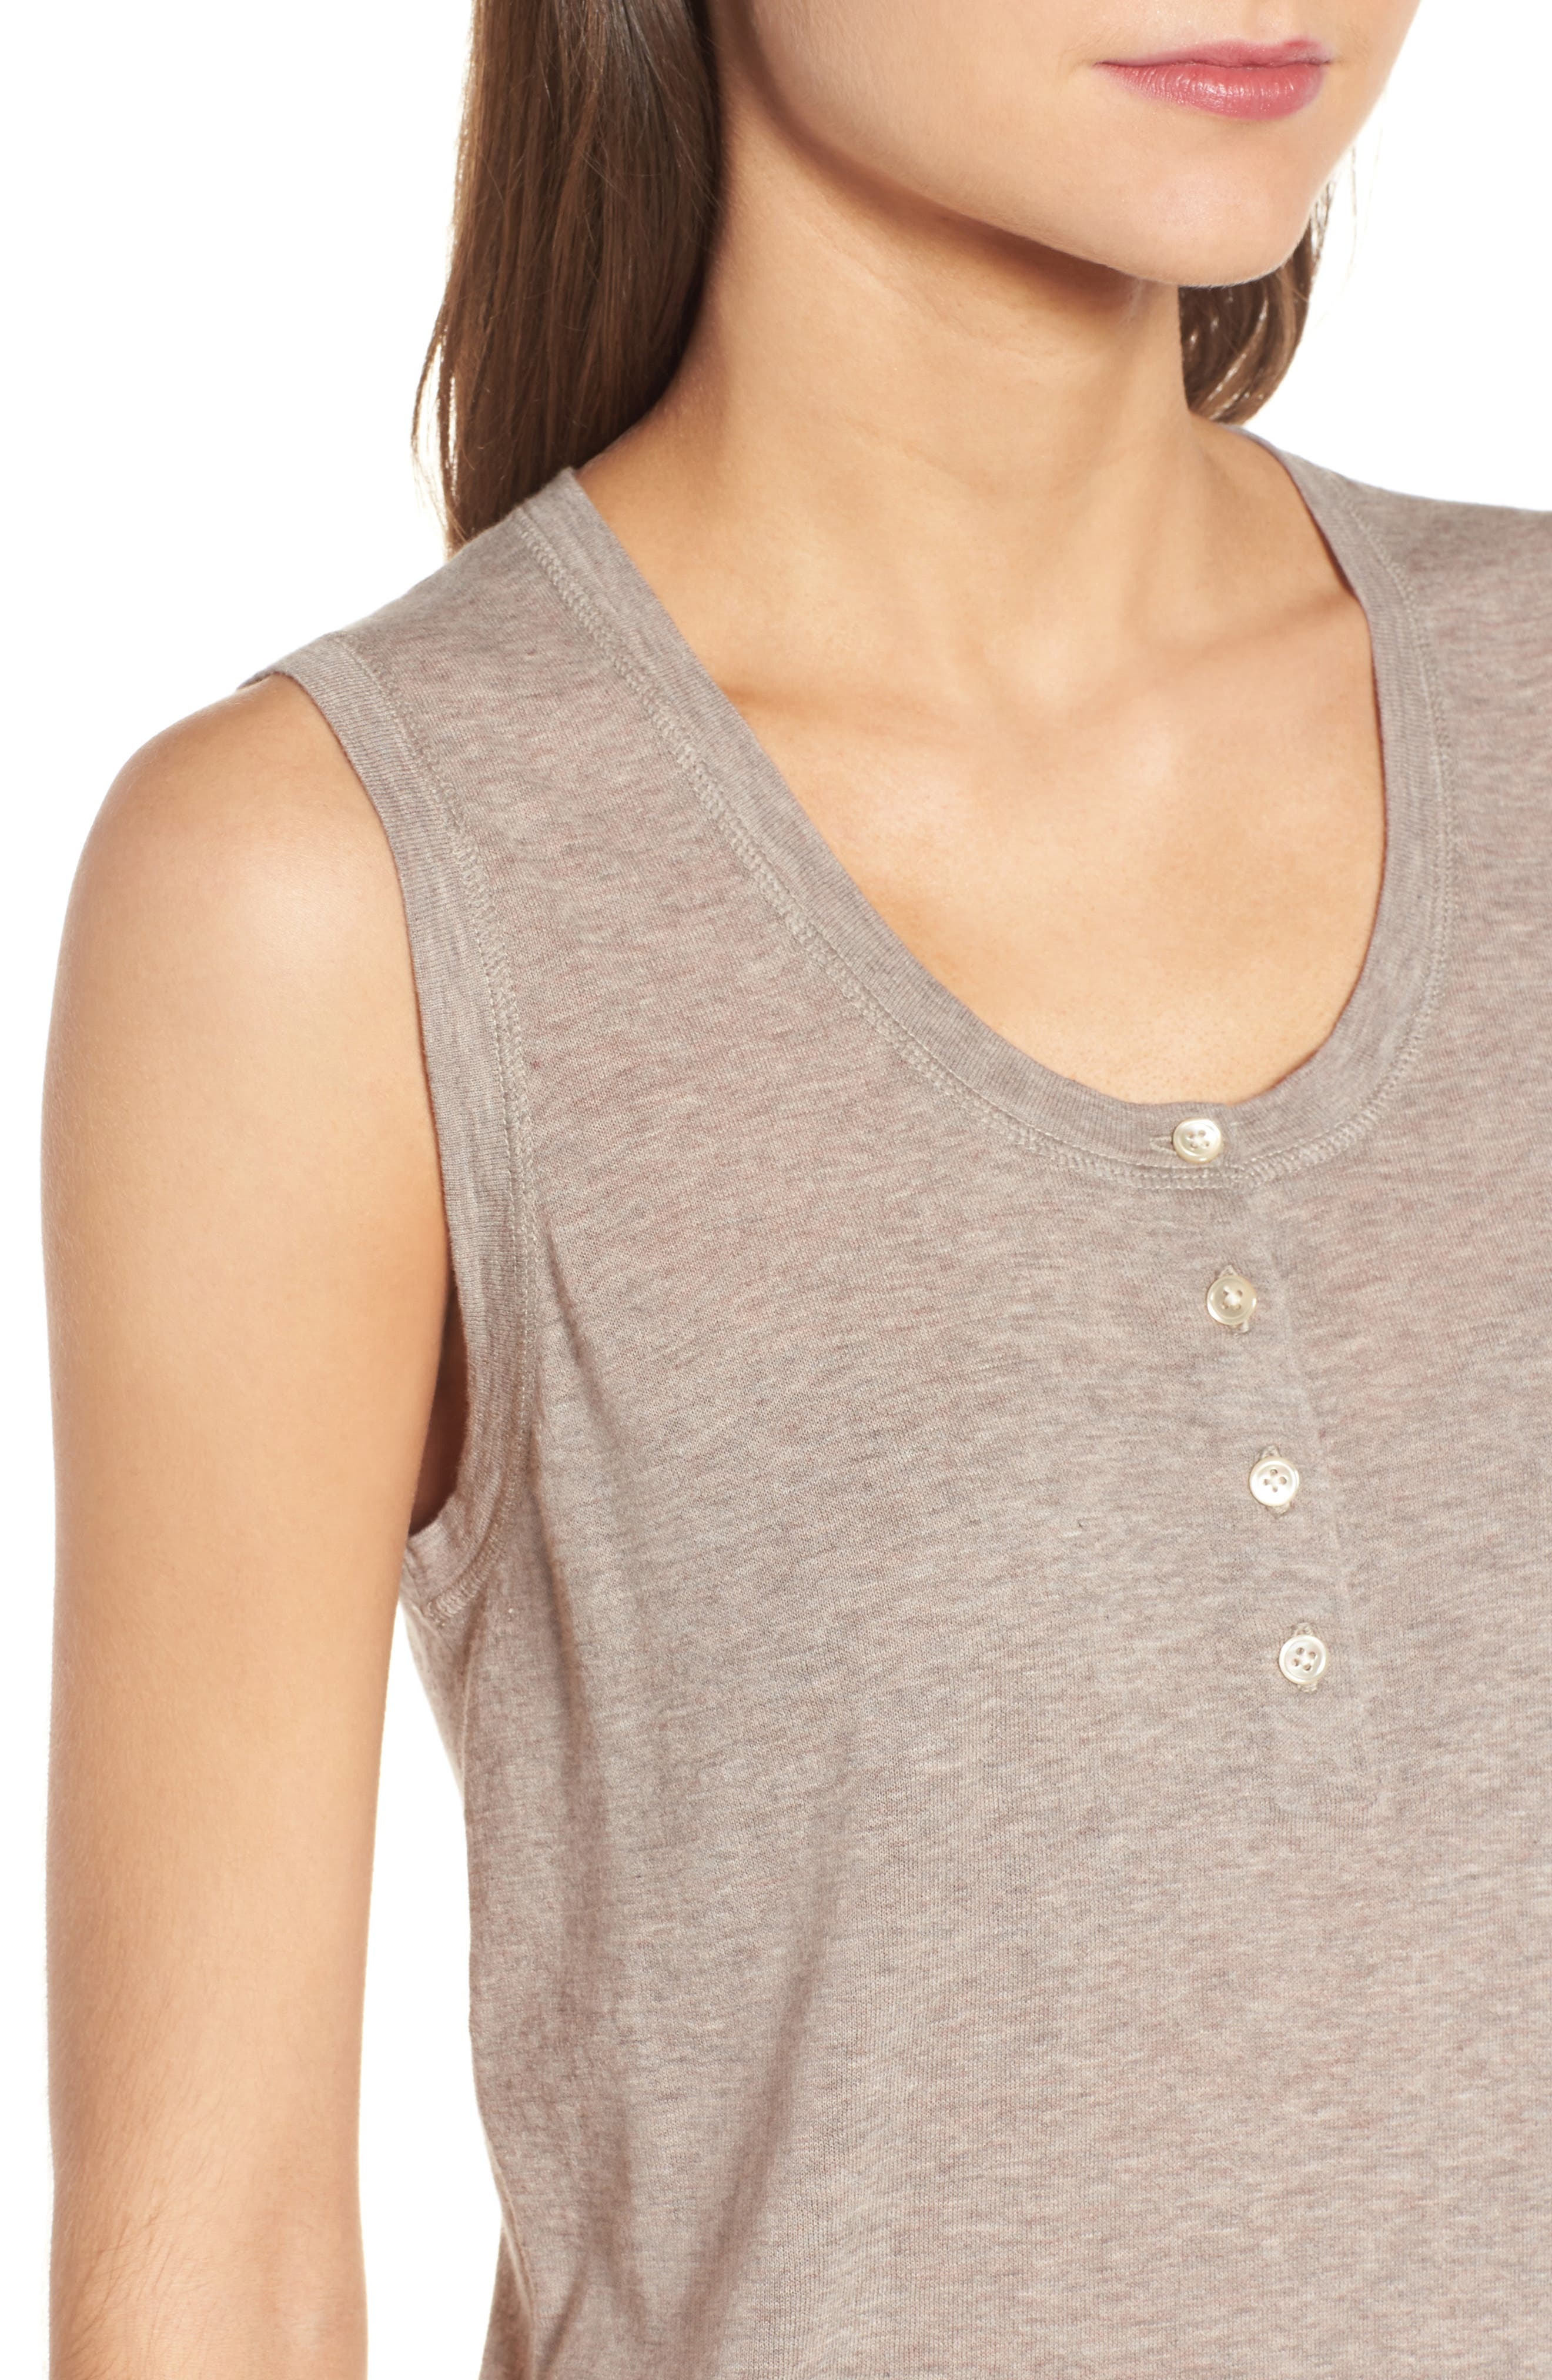 Henley Tank Sweater,                             Alternate thumbnail 4, color,                             Heather Taupe